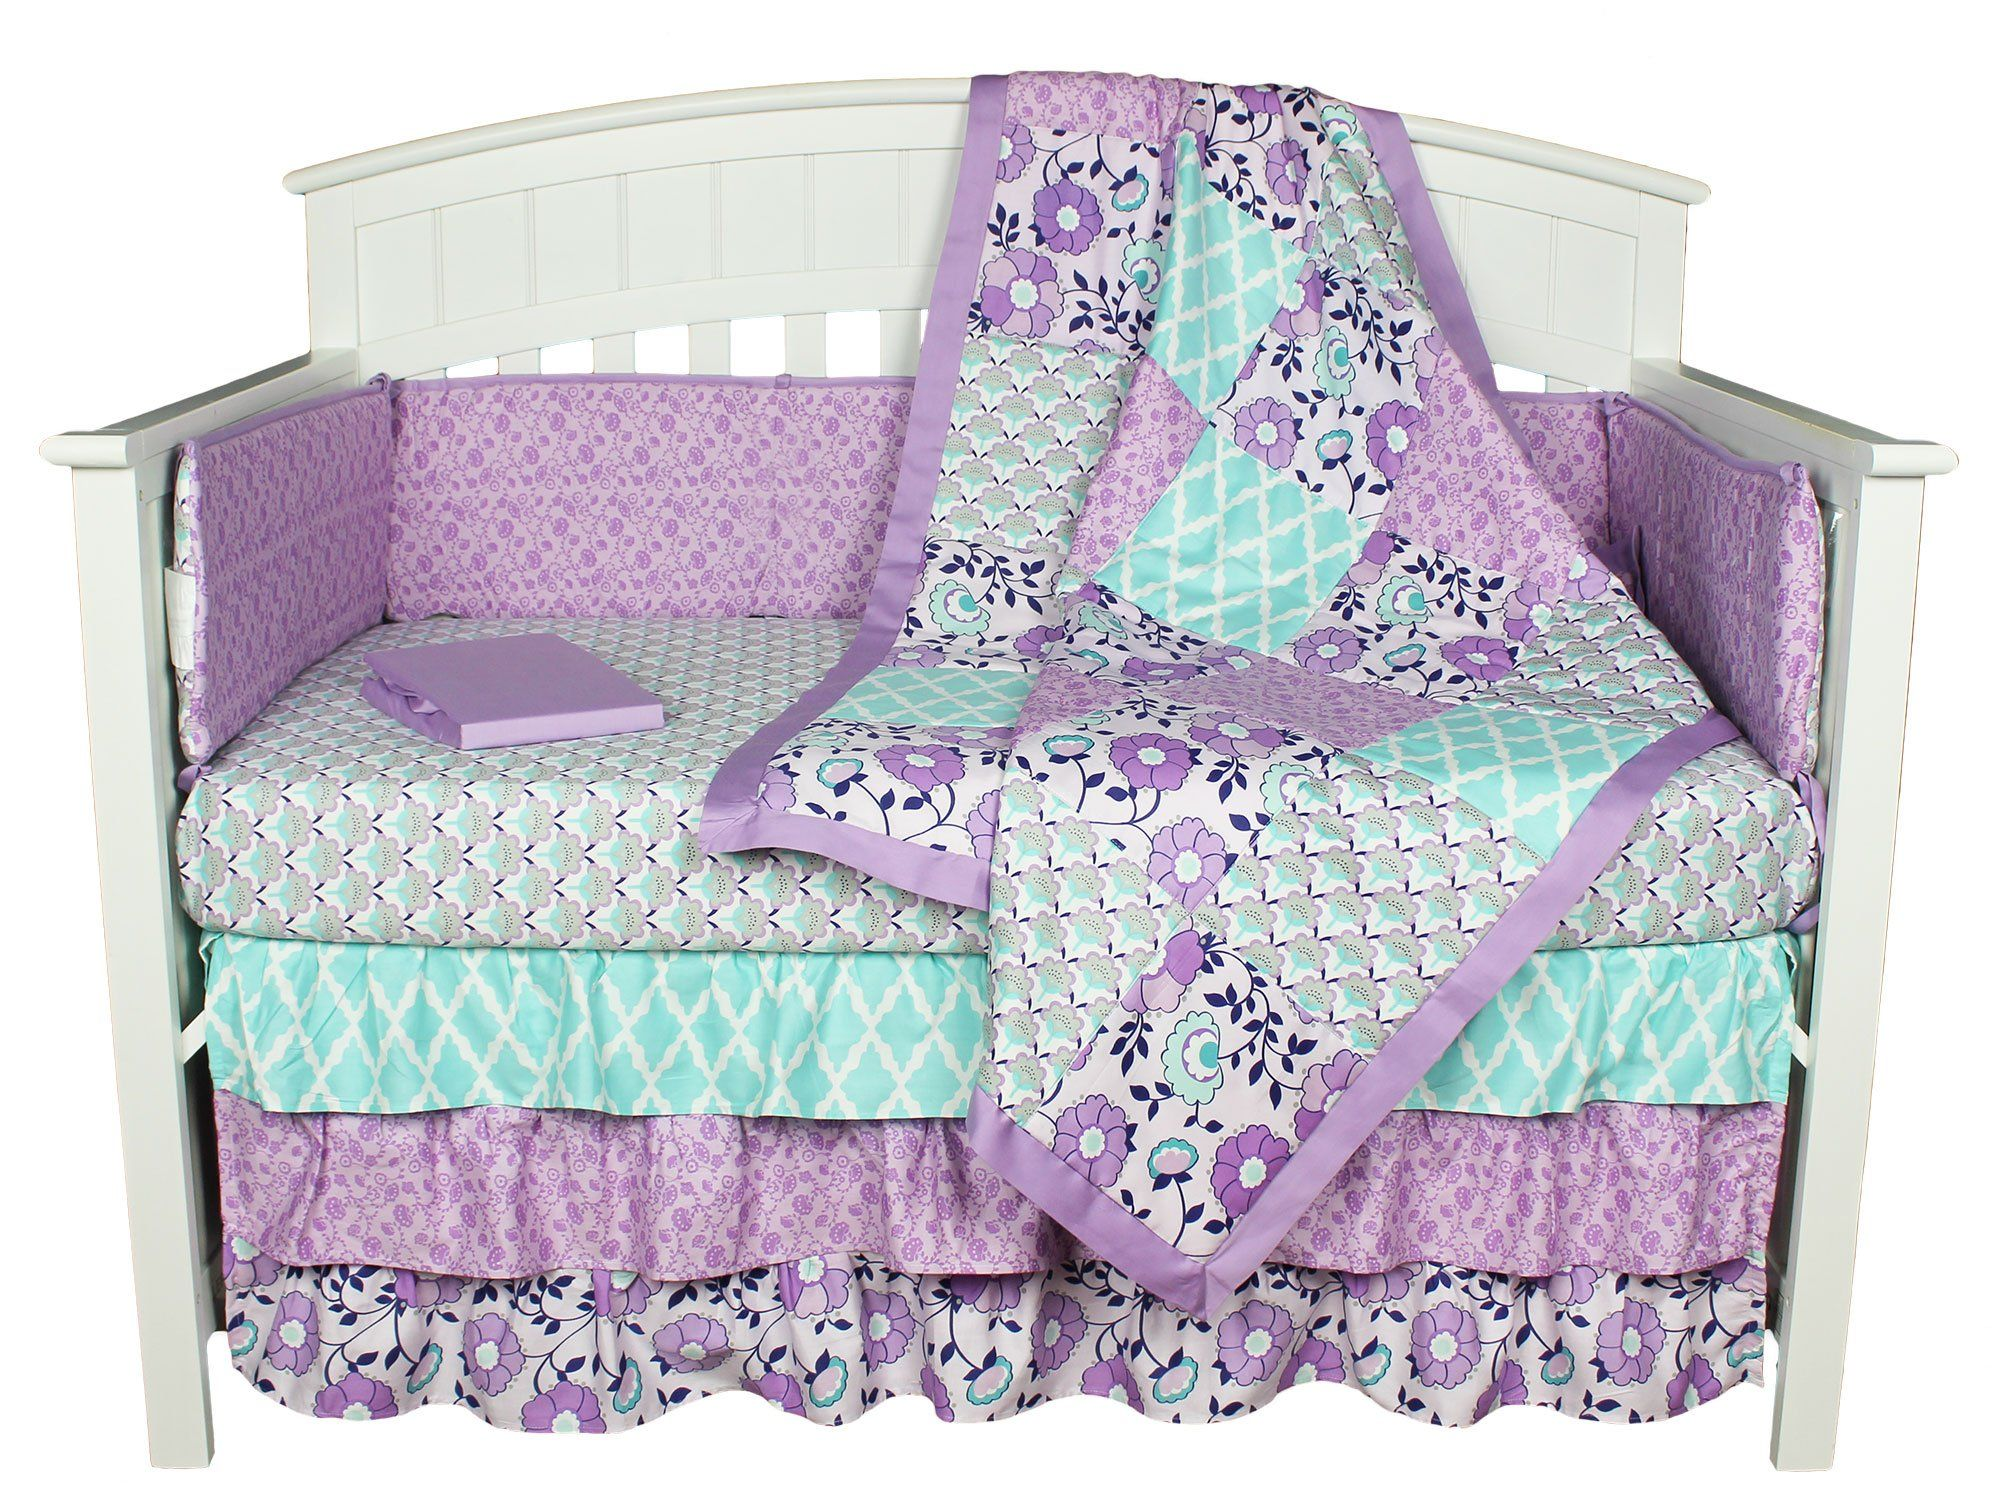 Baby girl paisley bedding - Zoe Floral Lavender Purple 8 In 1 Crib Bedding Collection Purple Baby Beddingbaby Girl Bedding Setspaisley